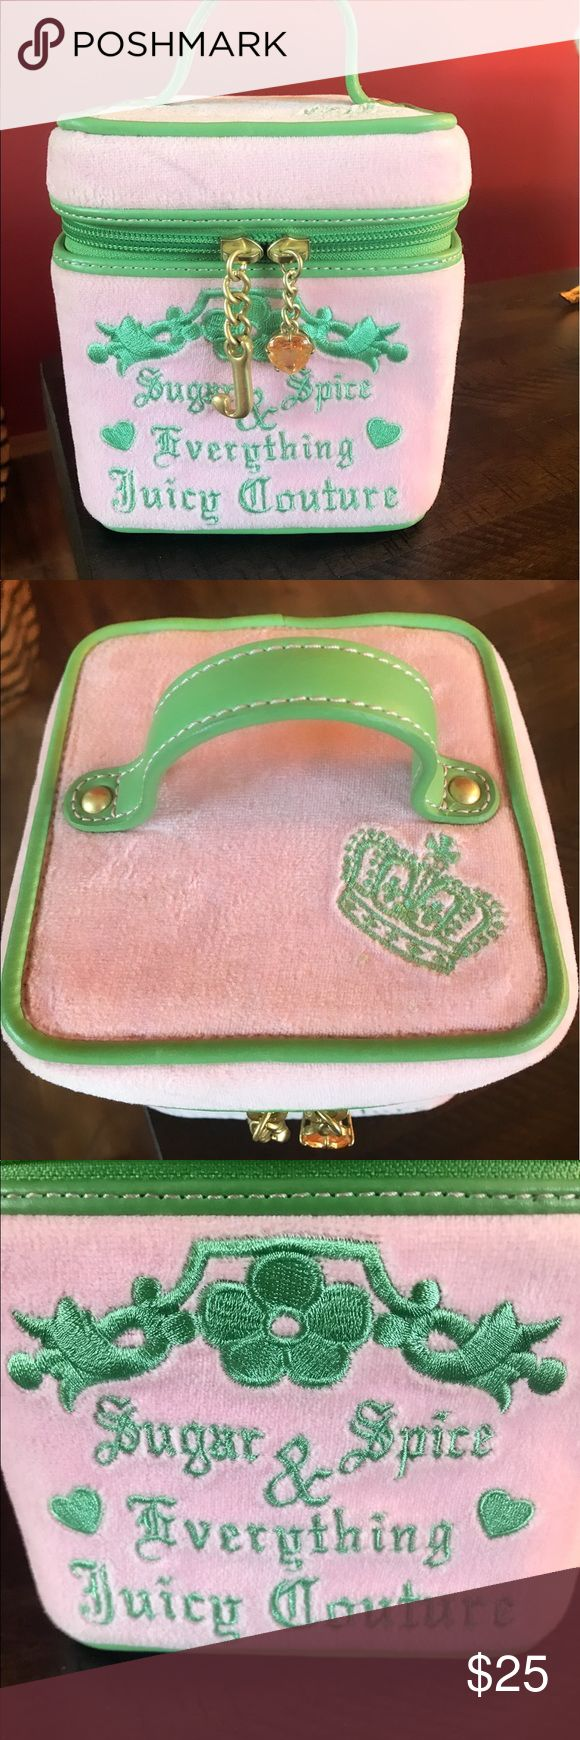 Juicy Couture make up travel case Great Condition Super chic pre-loved Juicy Couture travel case in great condition 🌻🌸🌼❤️ Hope you love it as much as I did 💜 Juicy Couture Makeup